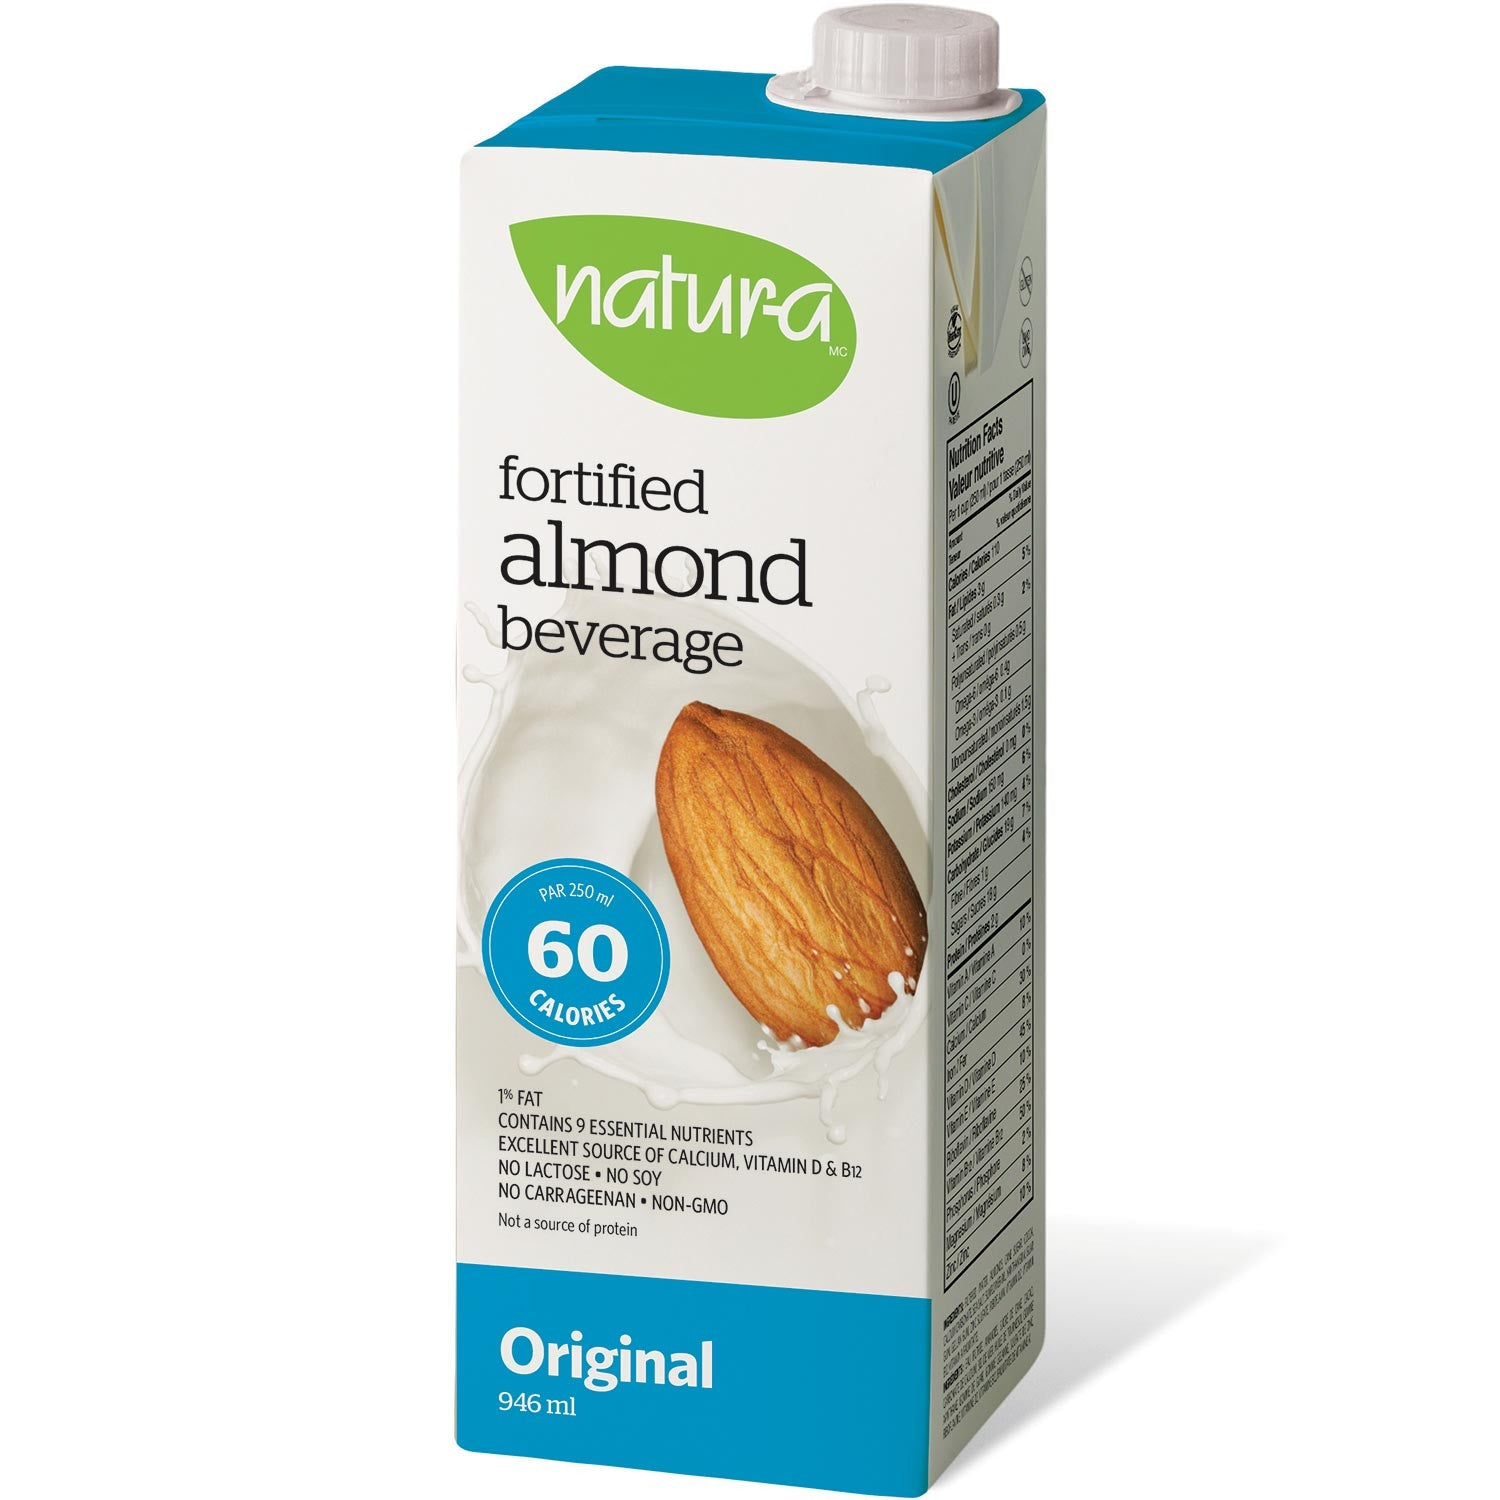 Natur-a Enriched Almond Beverage - Original, 946 ml.-NaturesWisdom